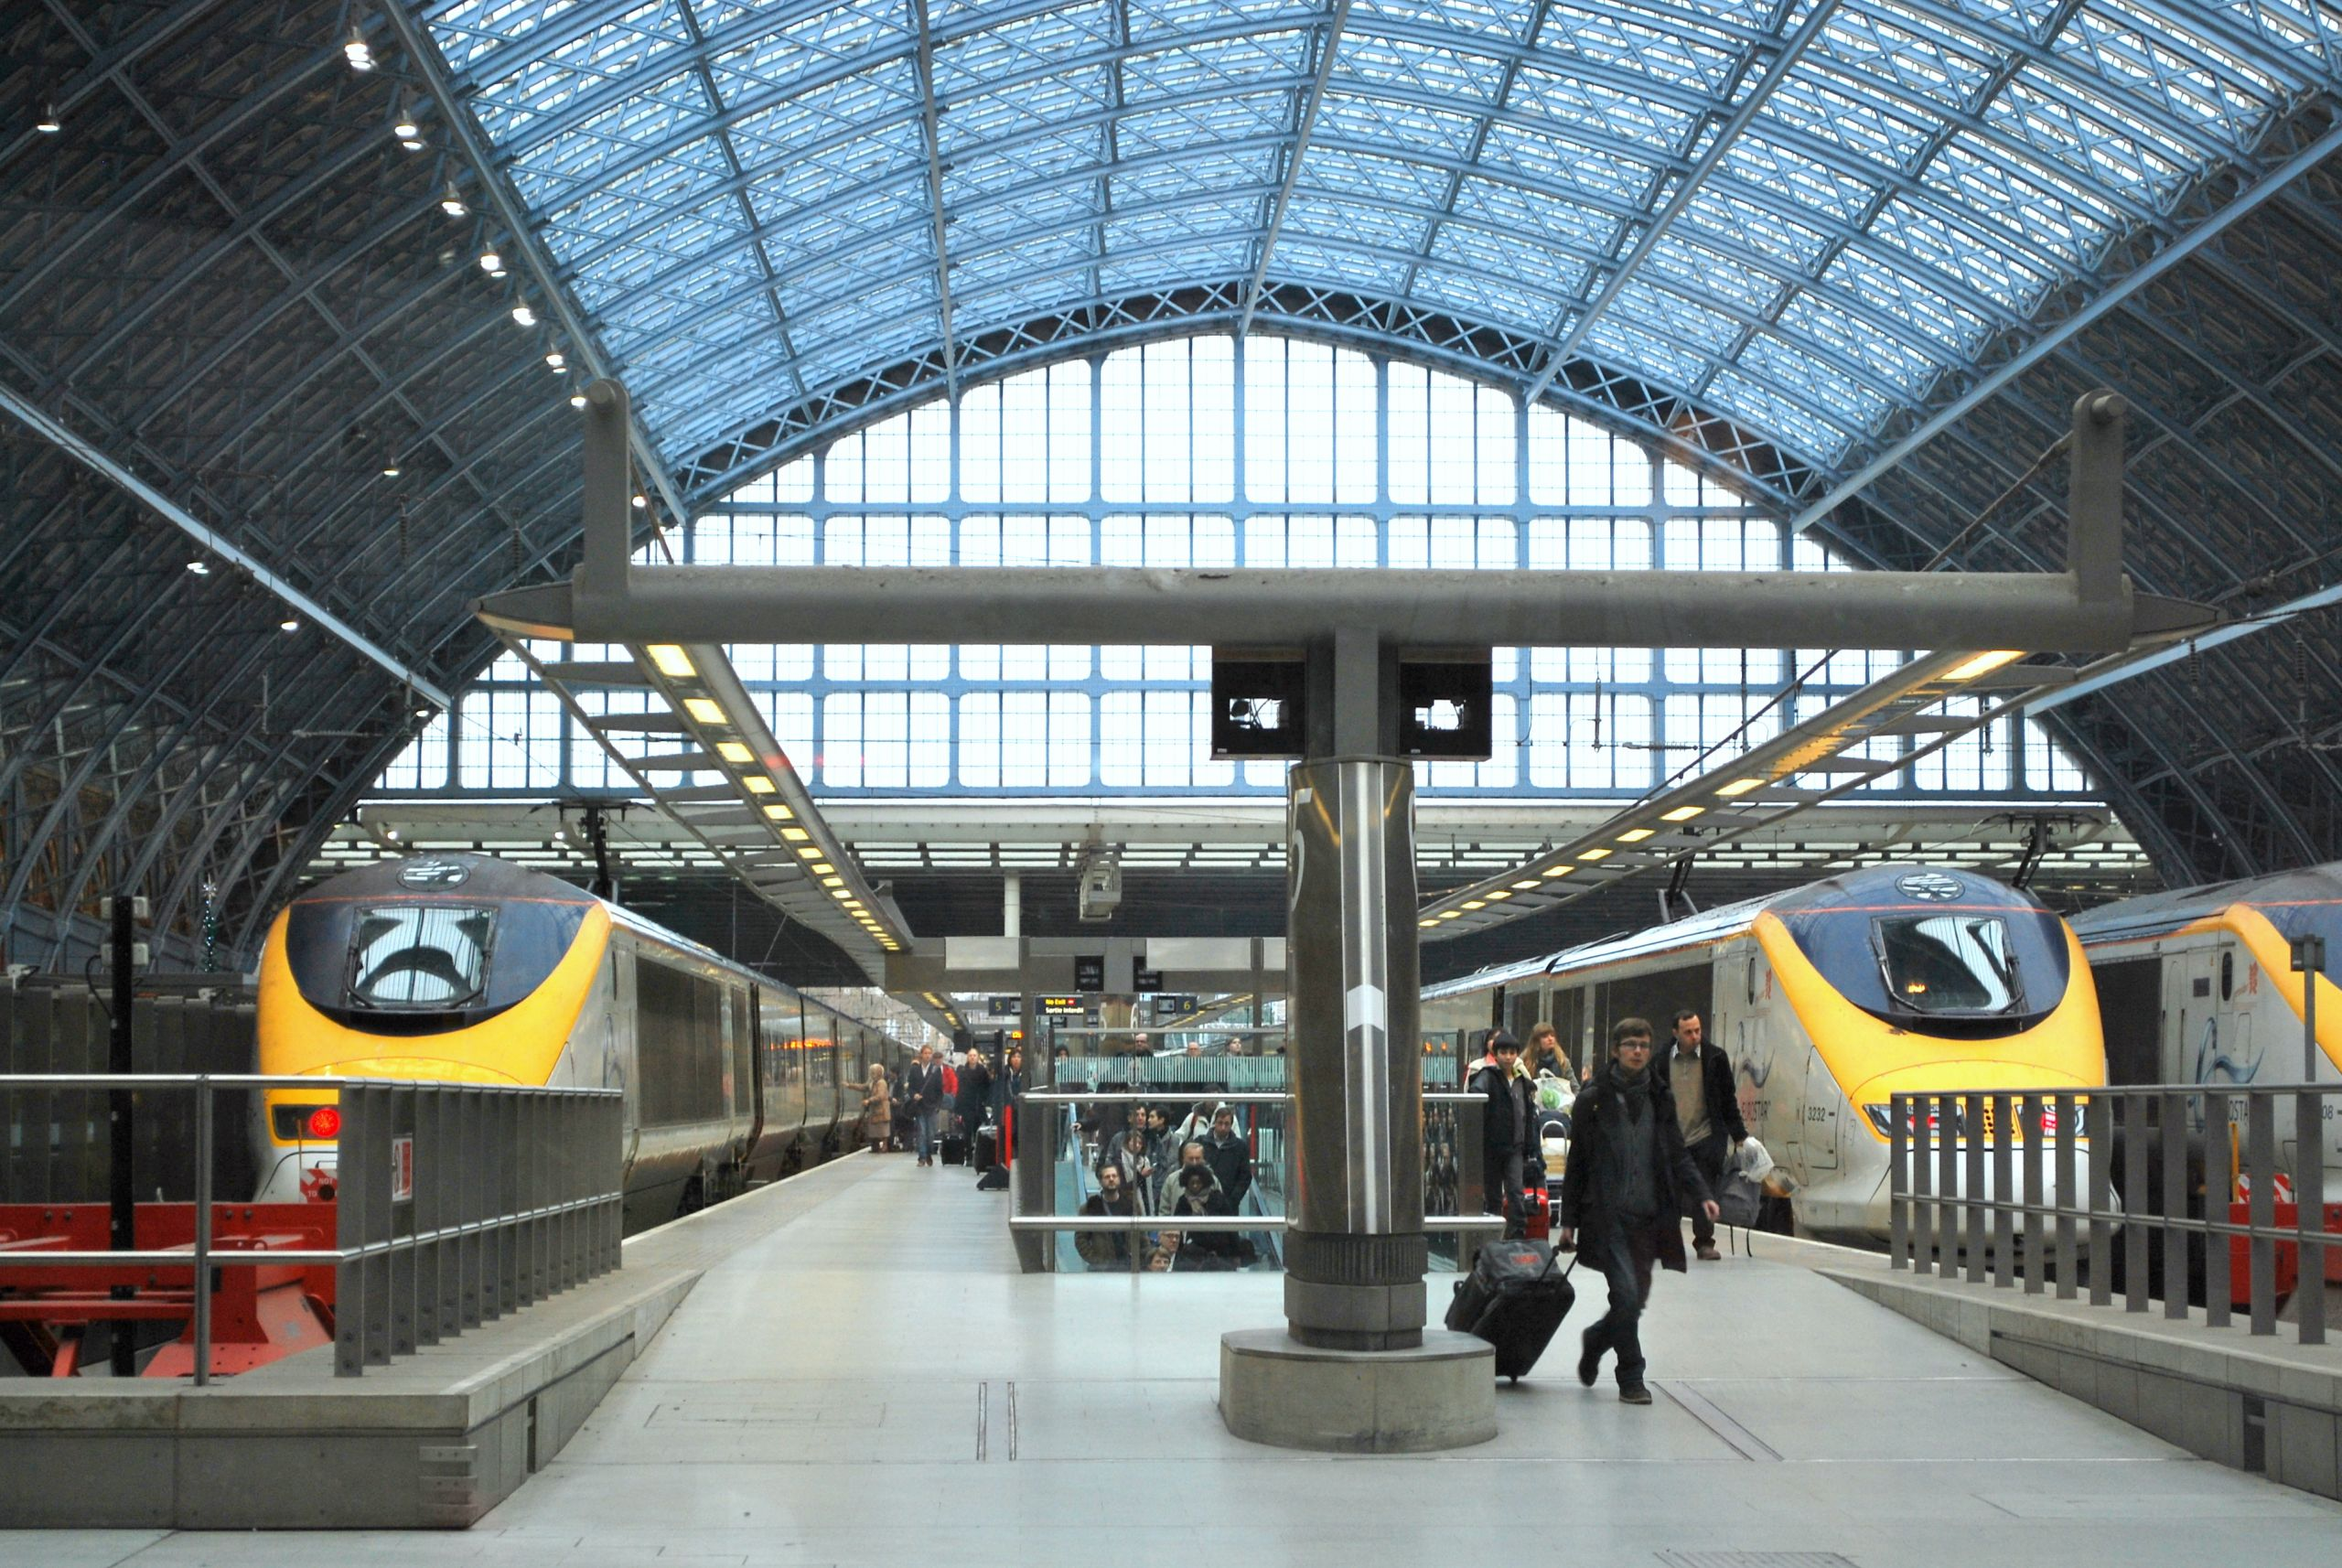 Eurostar trains at St Pancras